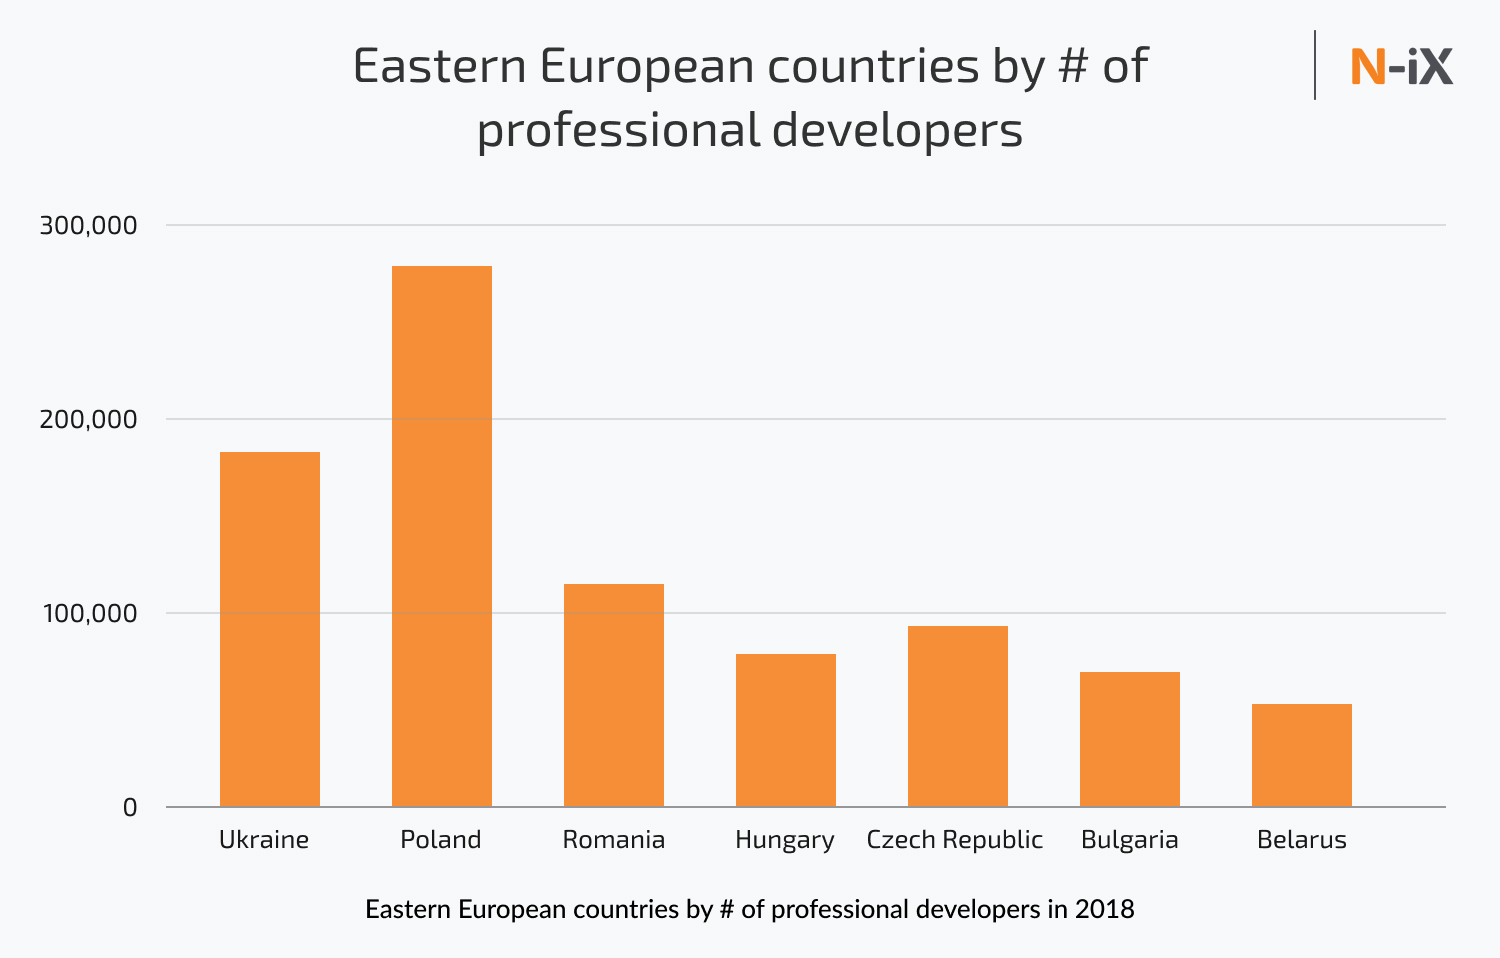 Best countries for IT outsourcing by the number of professional developers in Eastern Europe